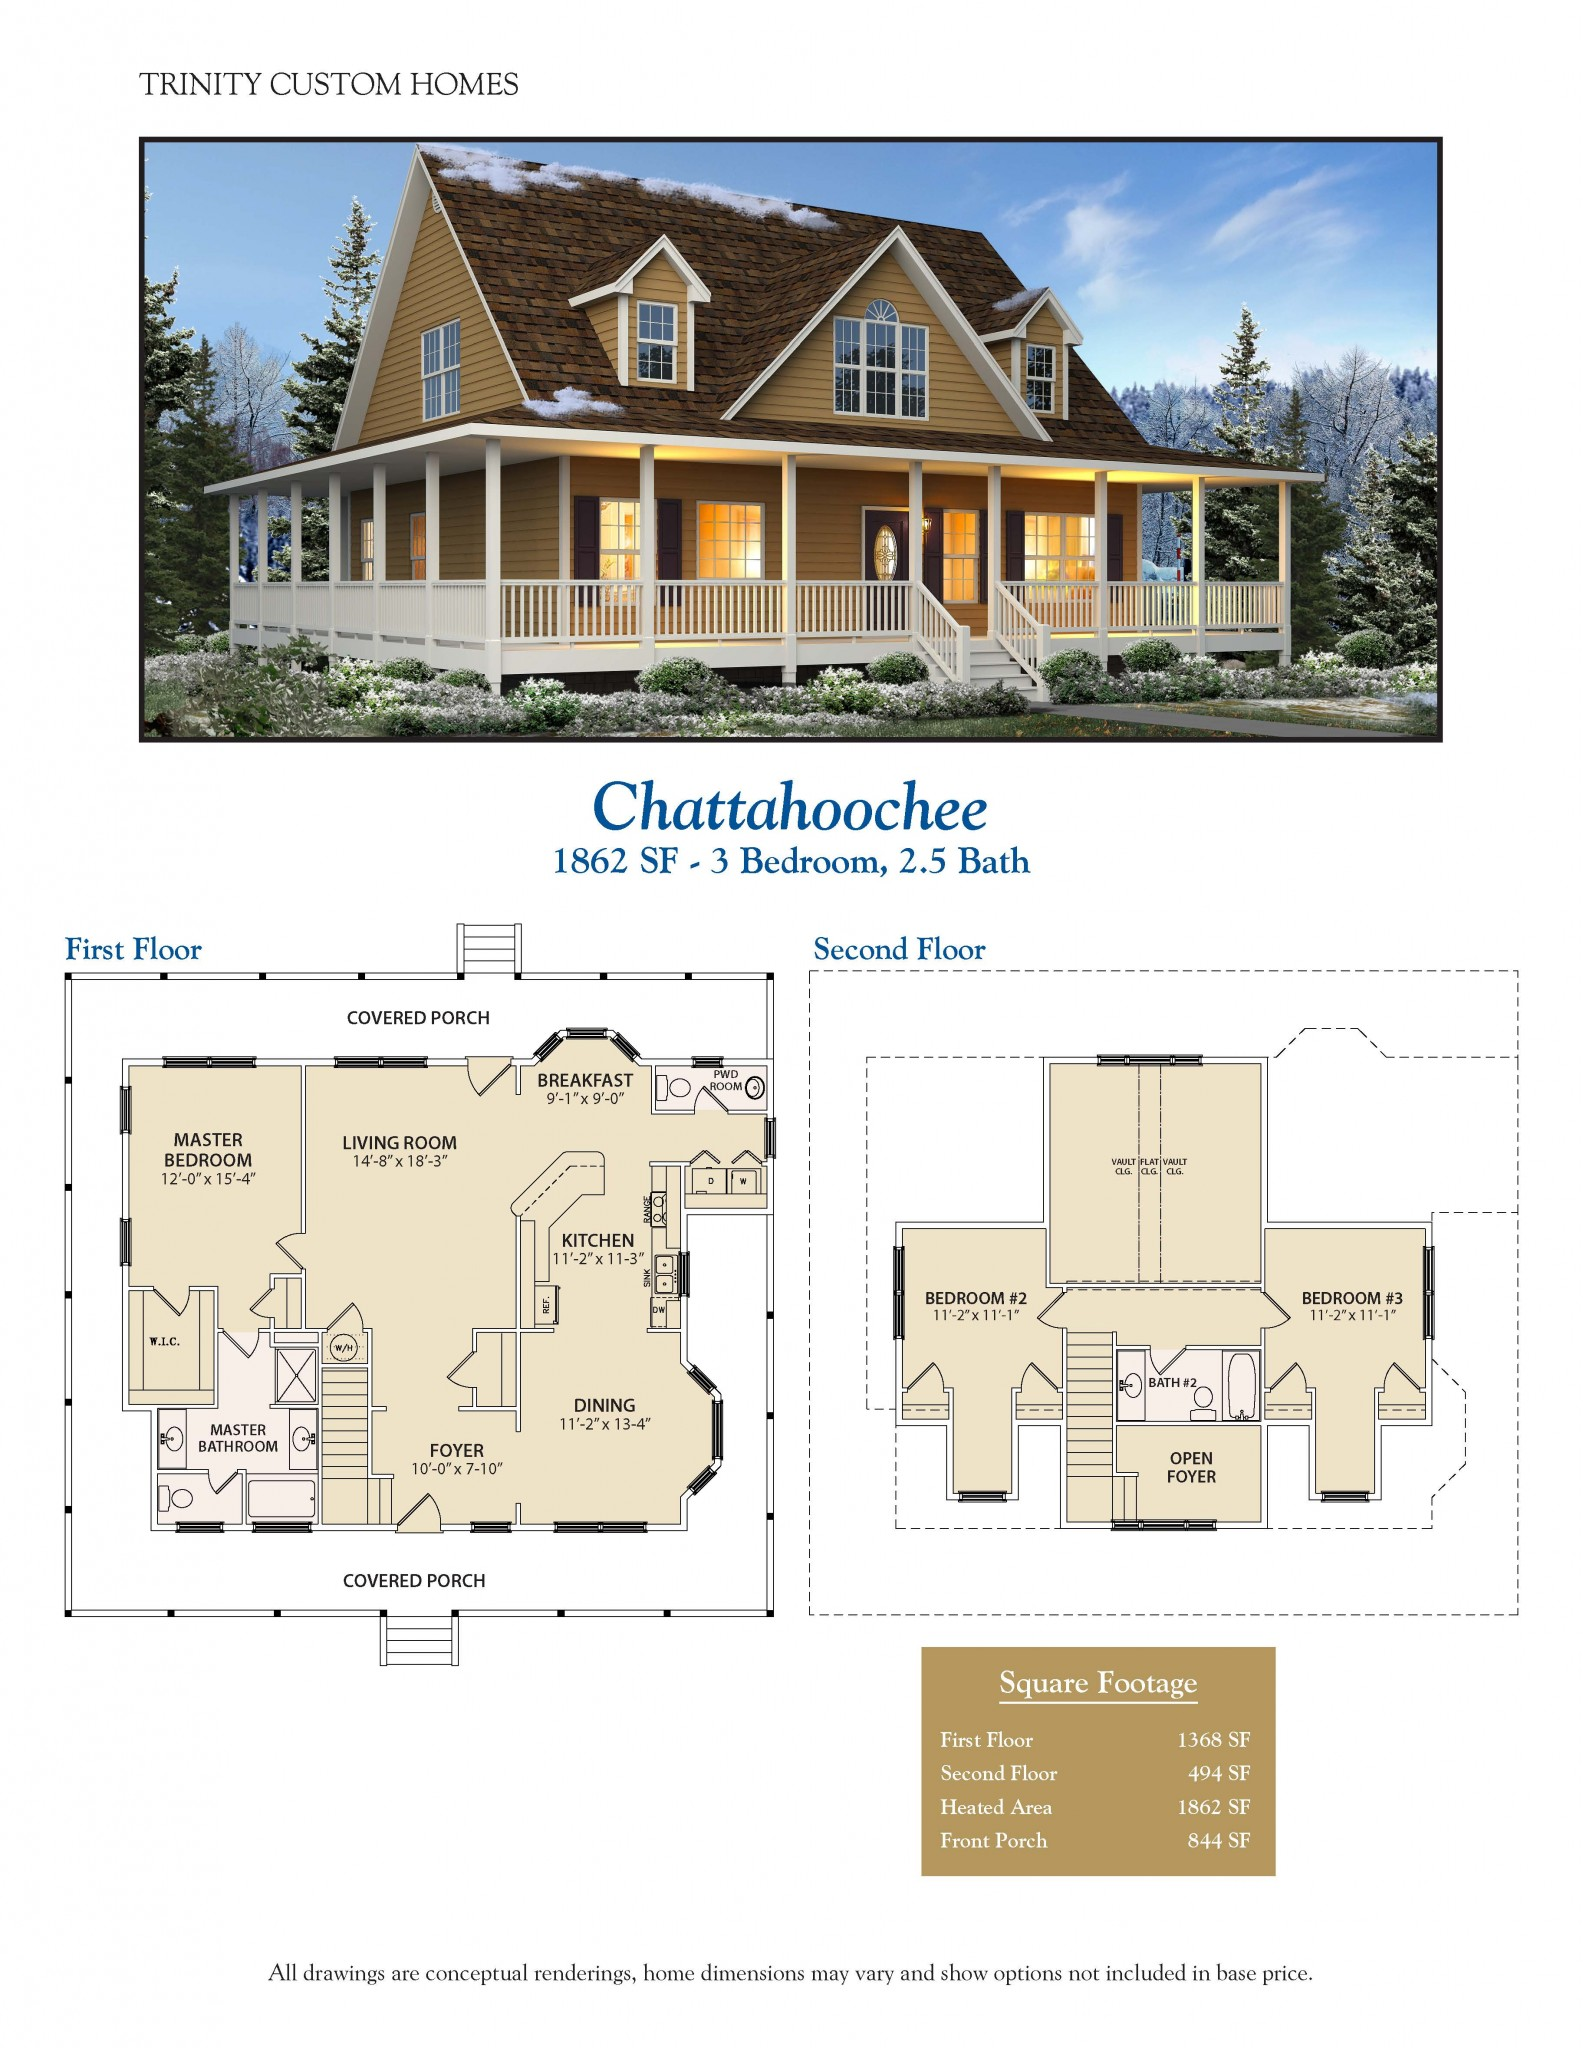 28 trinity homes floor plans floor plans trinity for Custom home floor plans